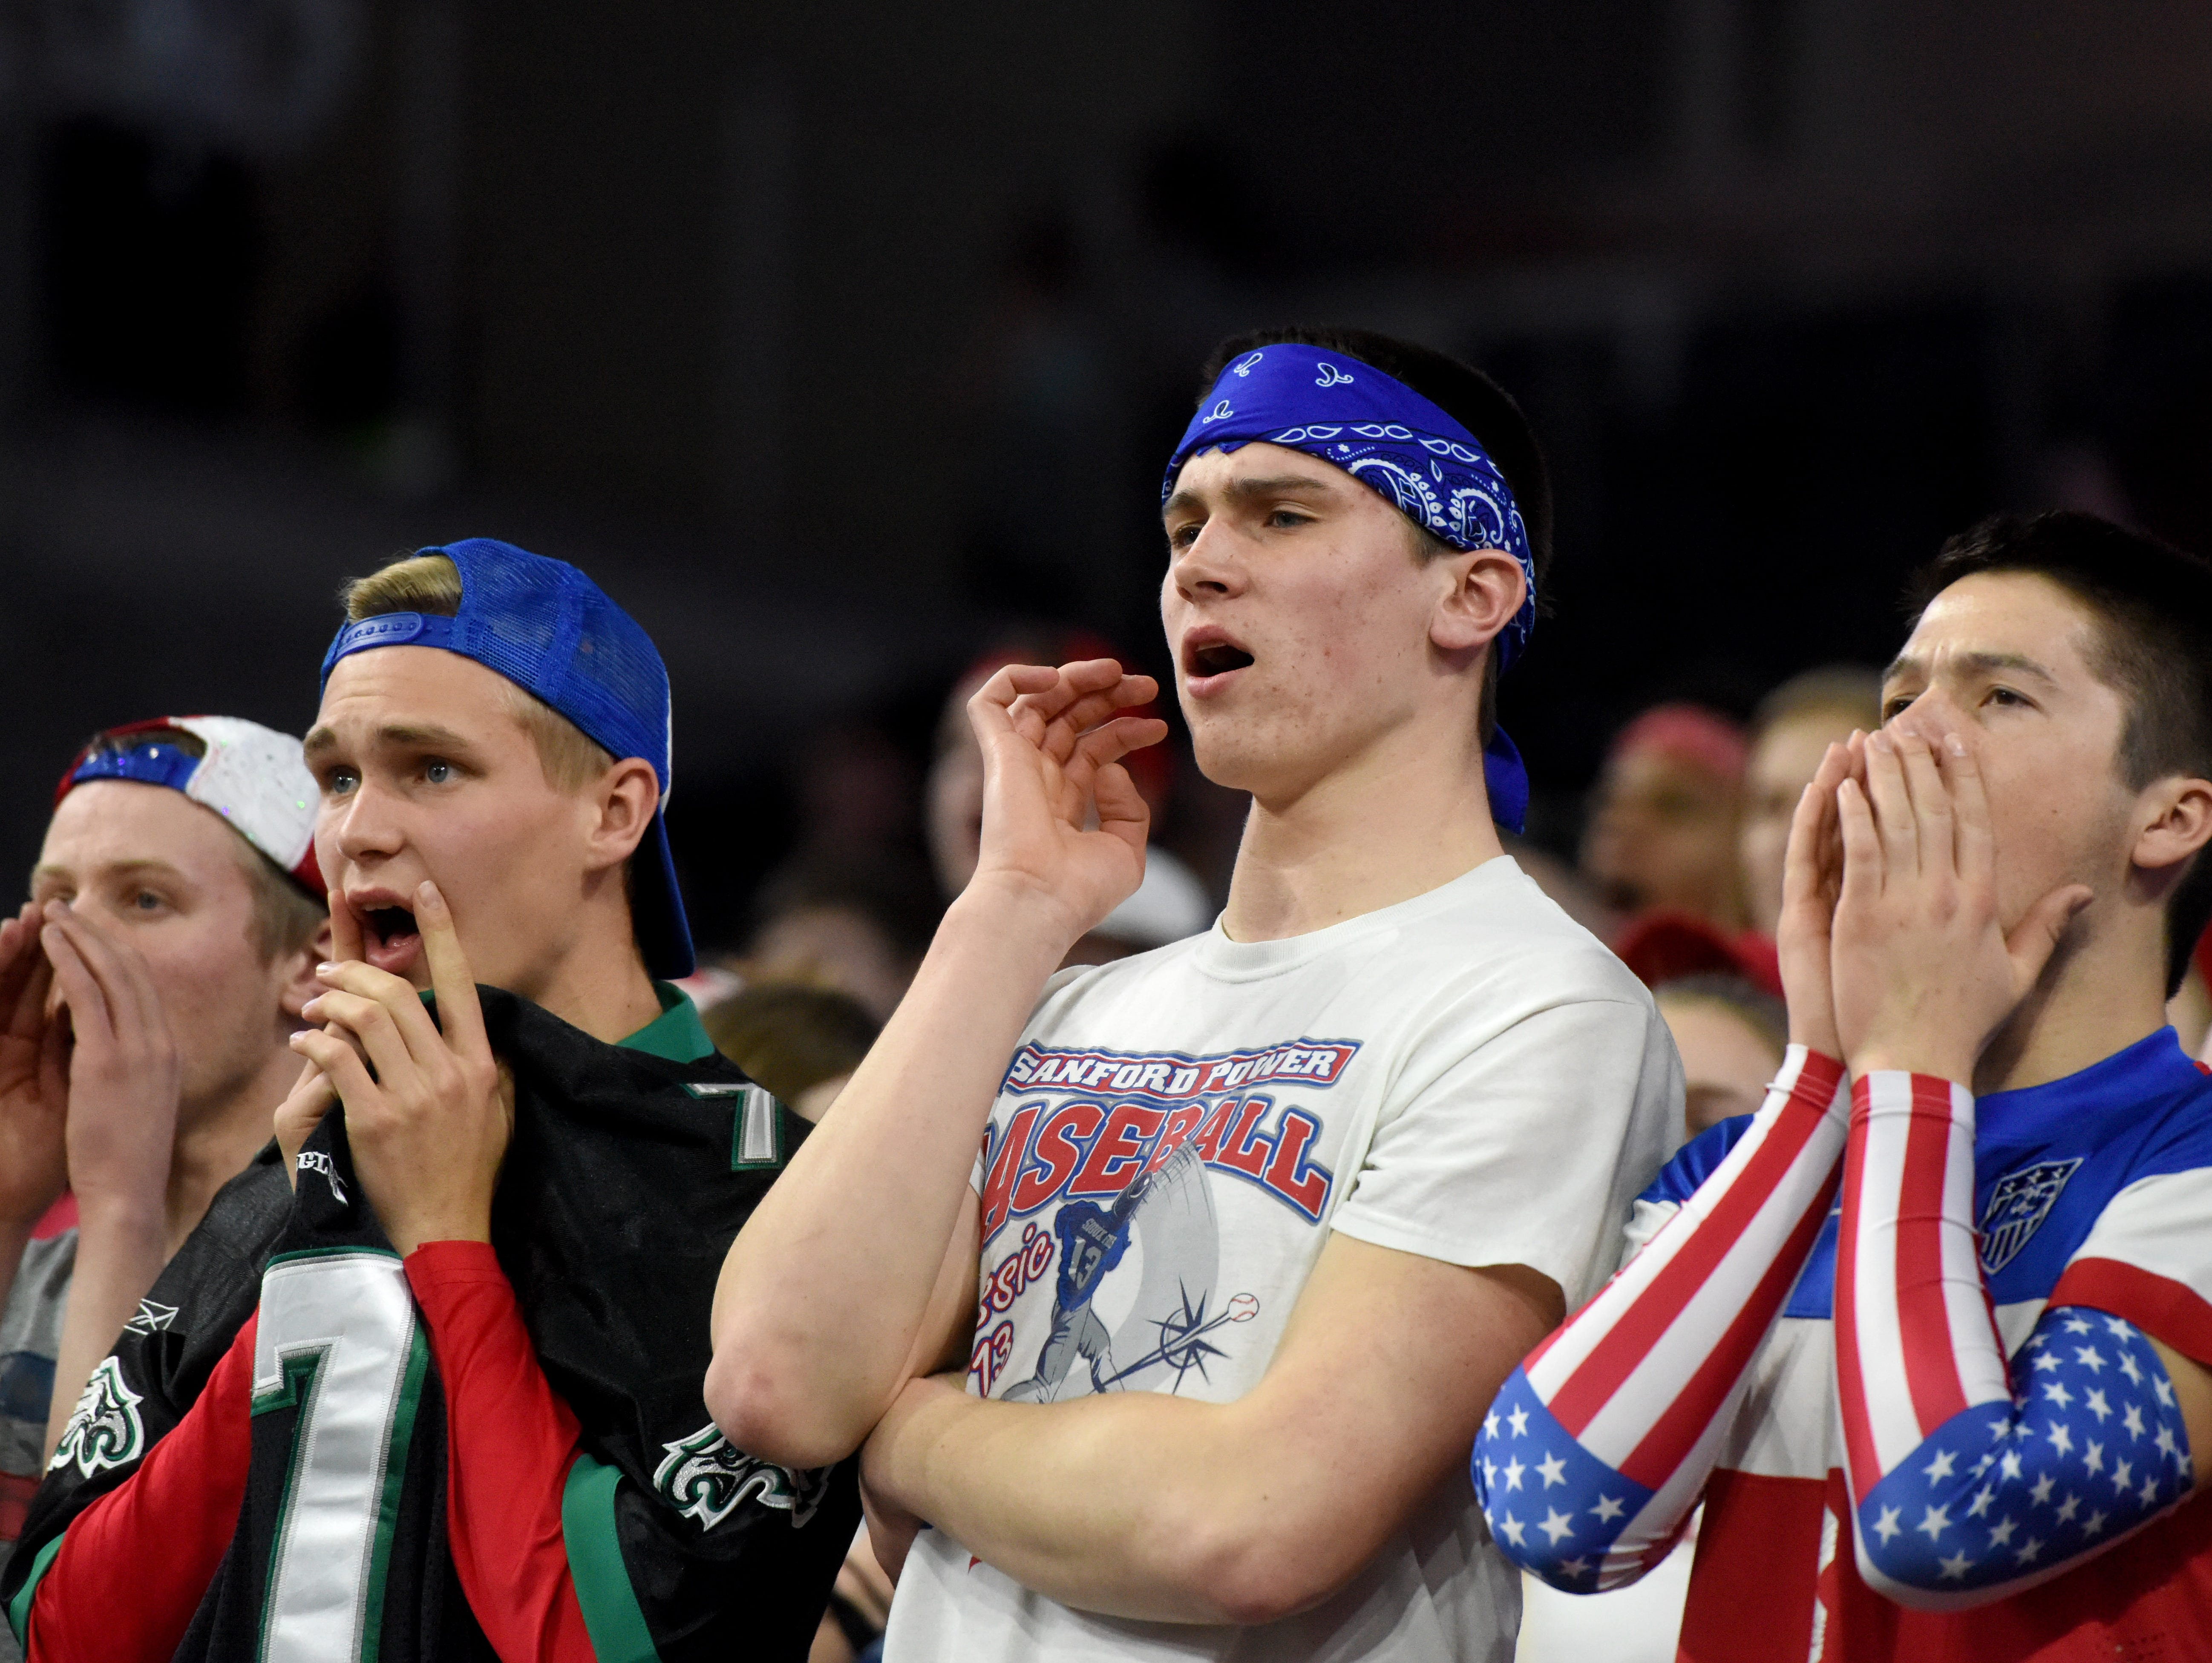 Sioux Falls Christian fans react while their team plays Madison in the 2017 SDHSAA Class A boy's basketball semifinals at the Denny Sanford Premier Center on Friday, March 17, 2017.